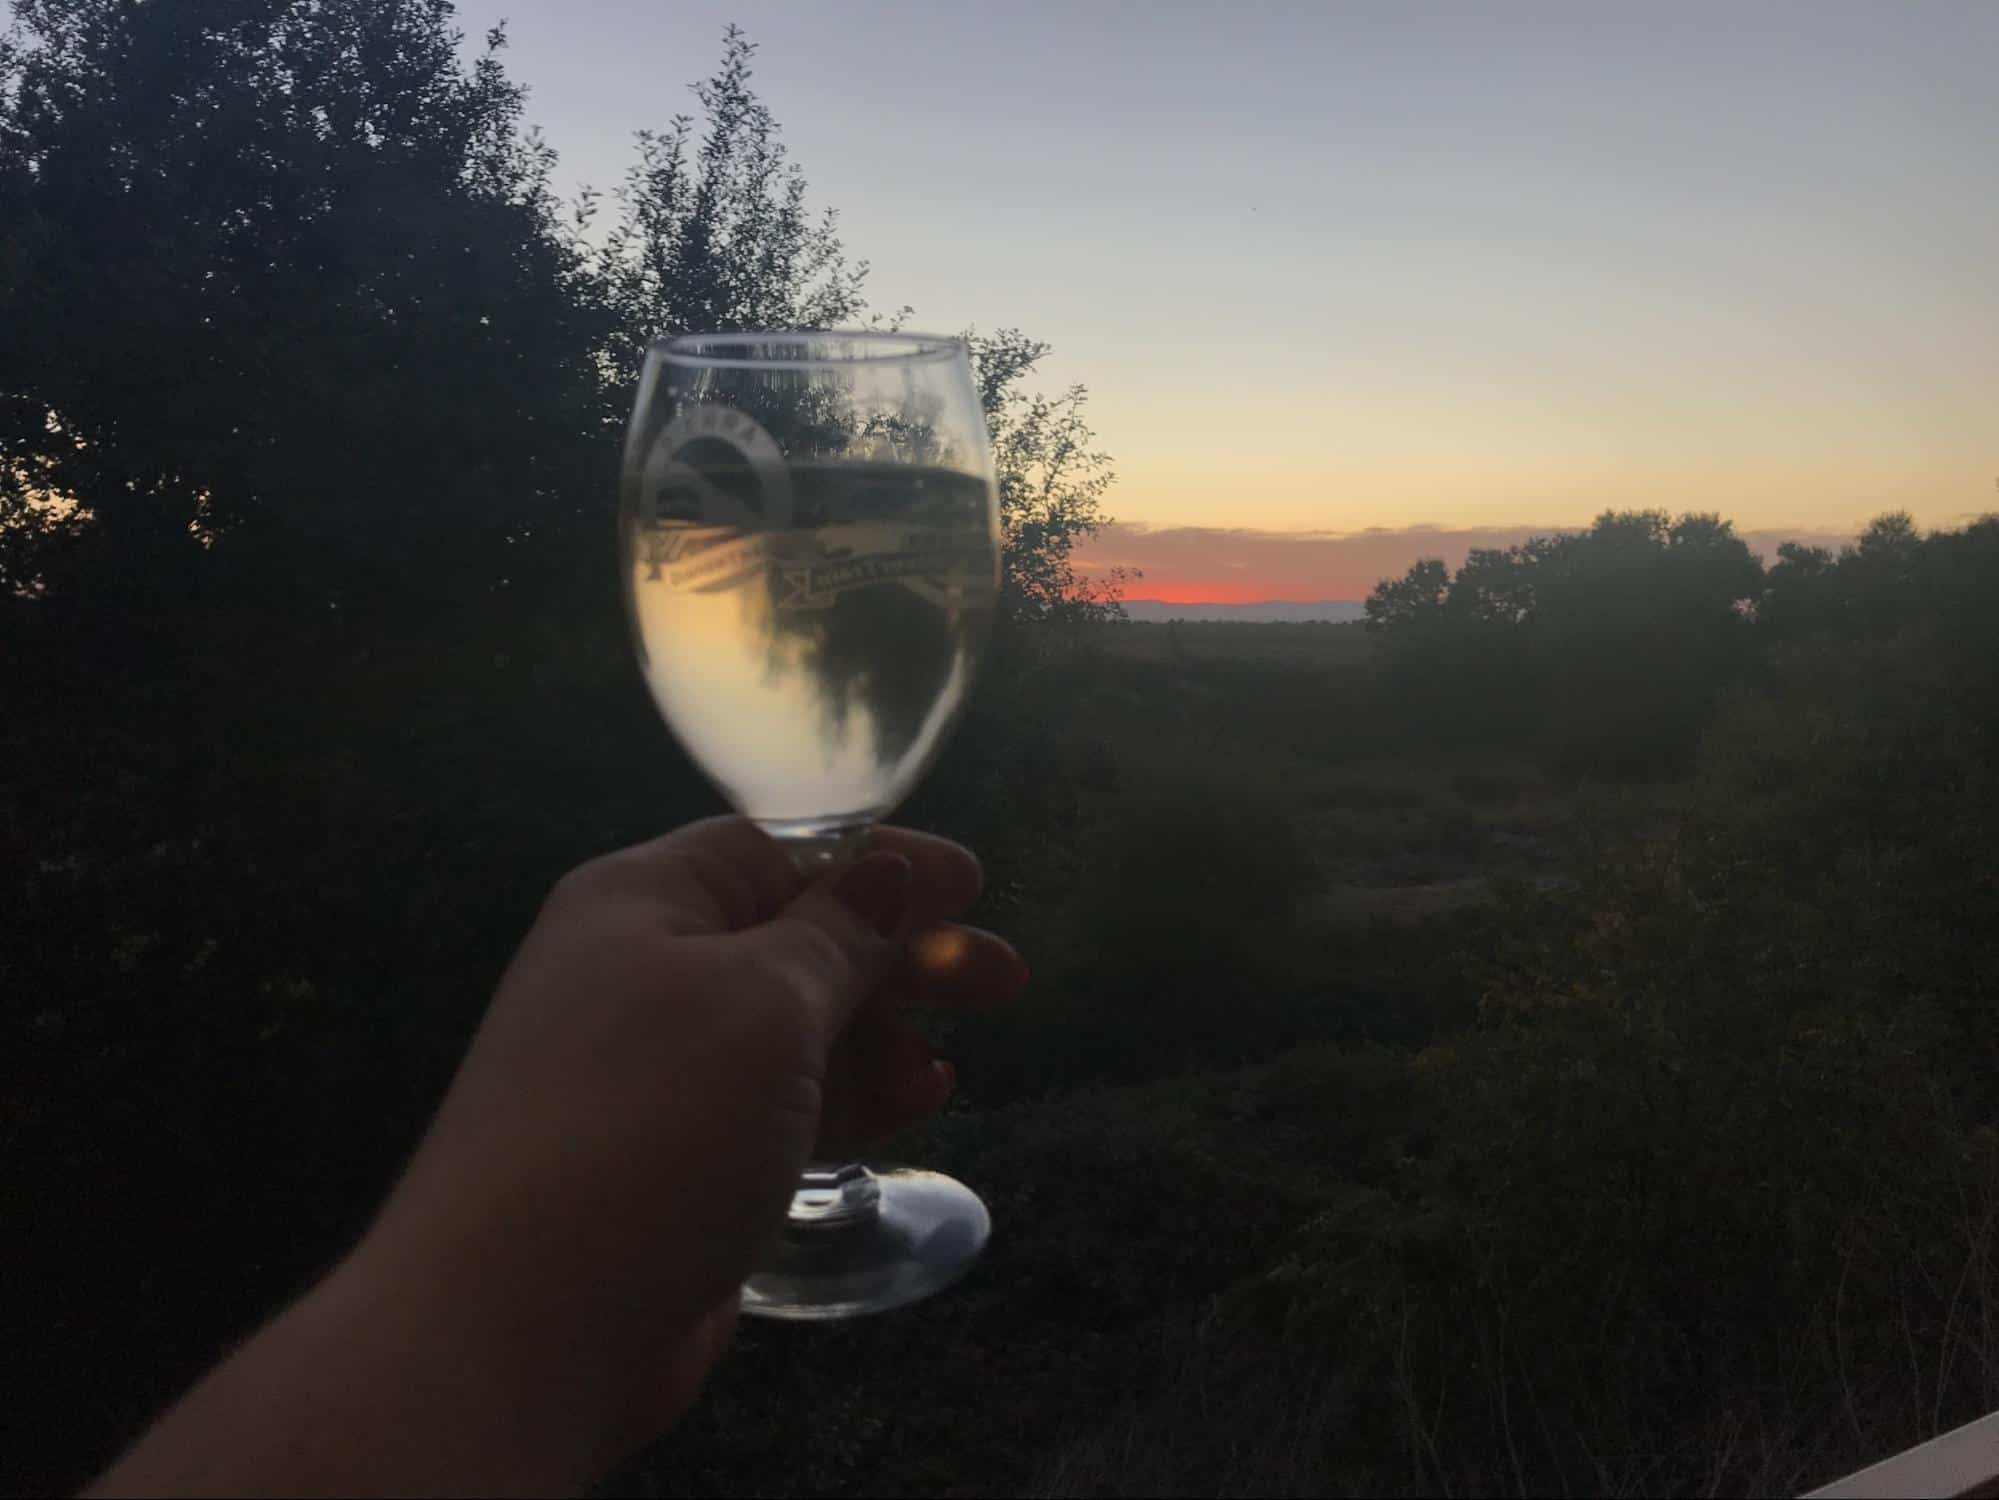 A glass of wine to toast a beautiful sunset.